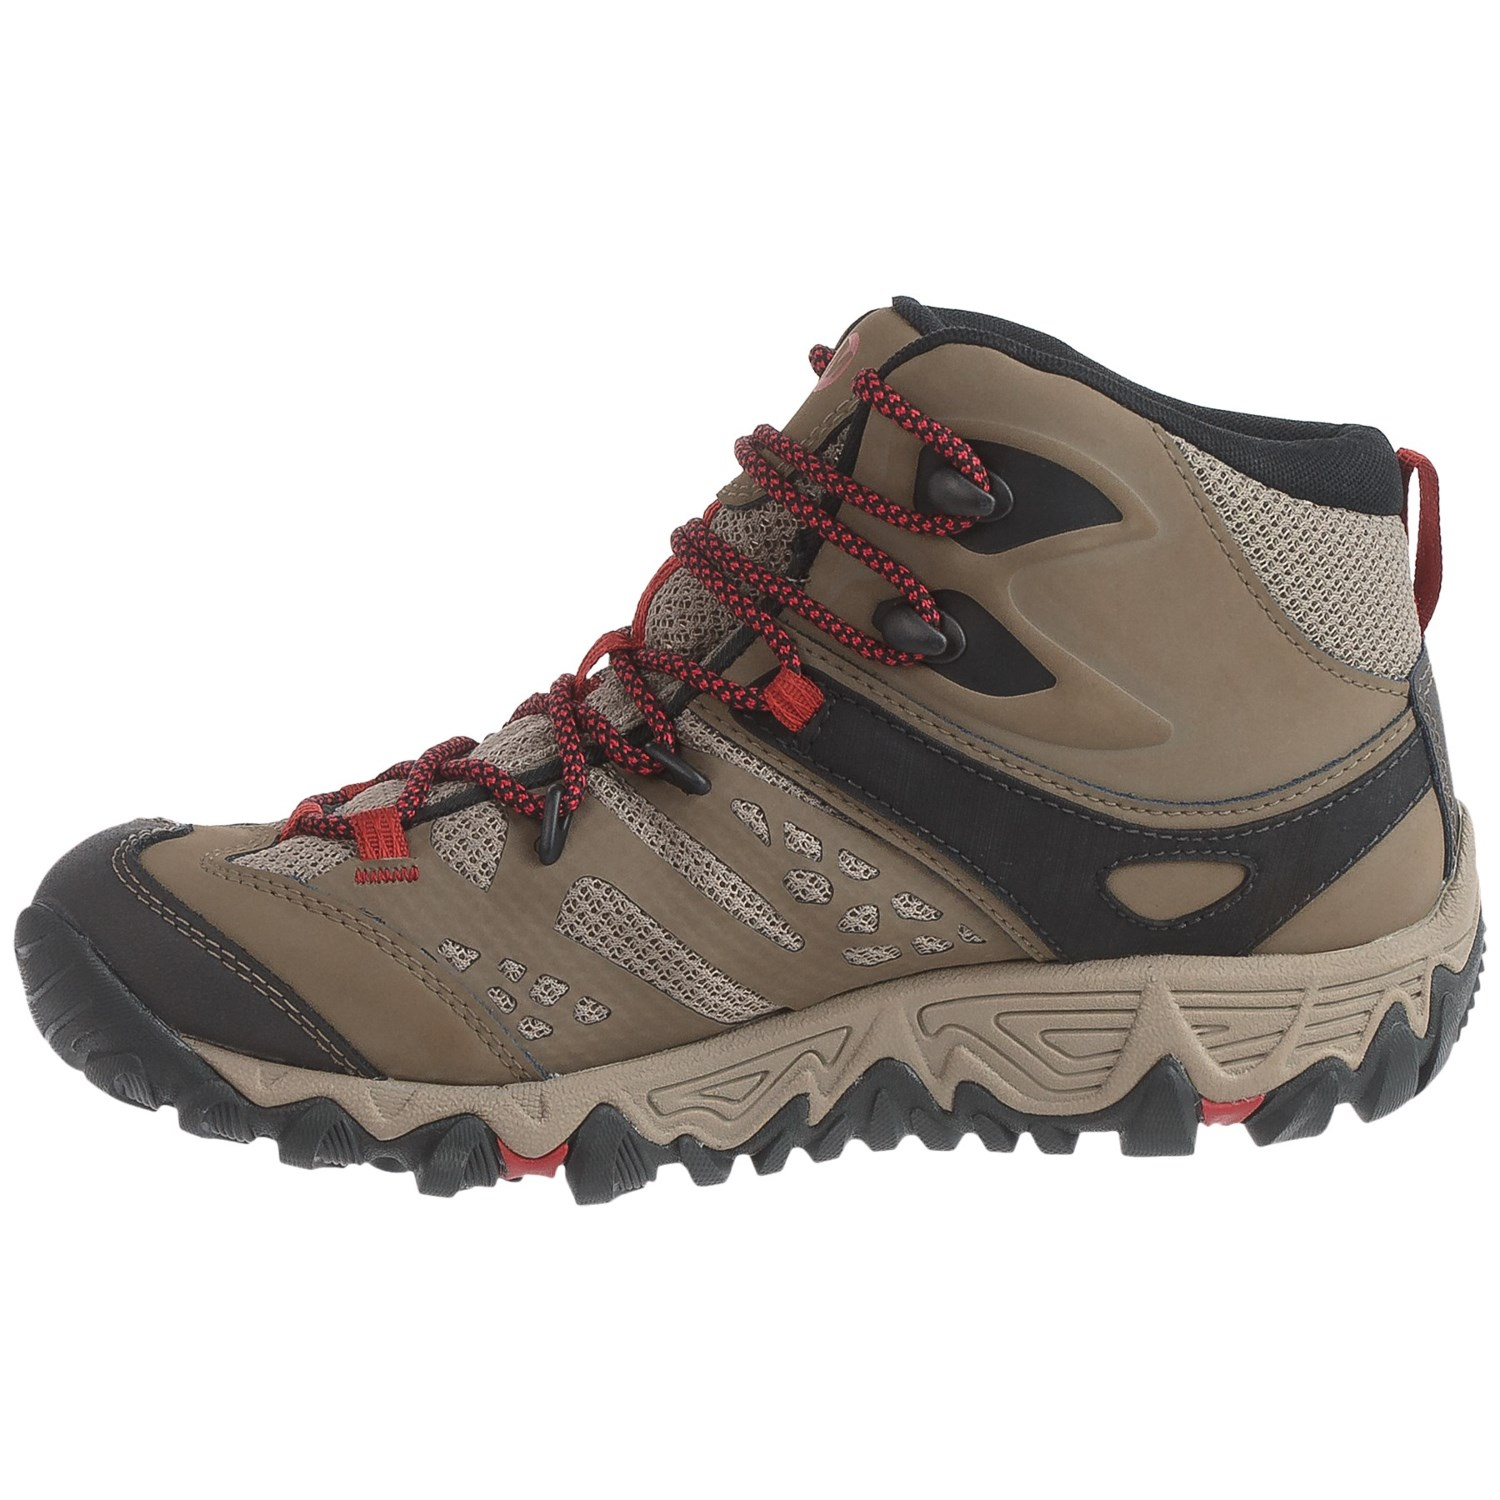 Merrell All Out Blaze Ventilator Mid Hiking Boots For